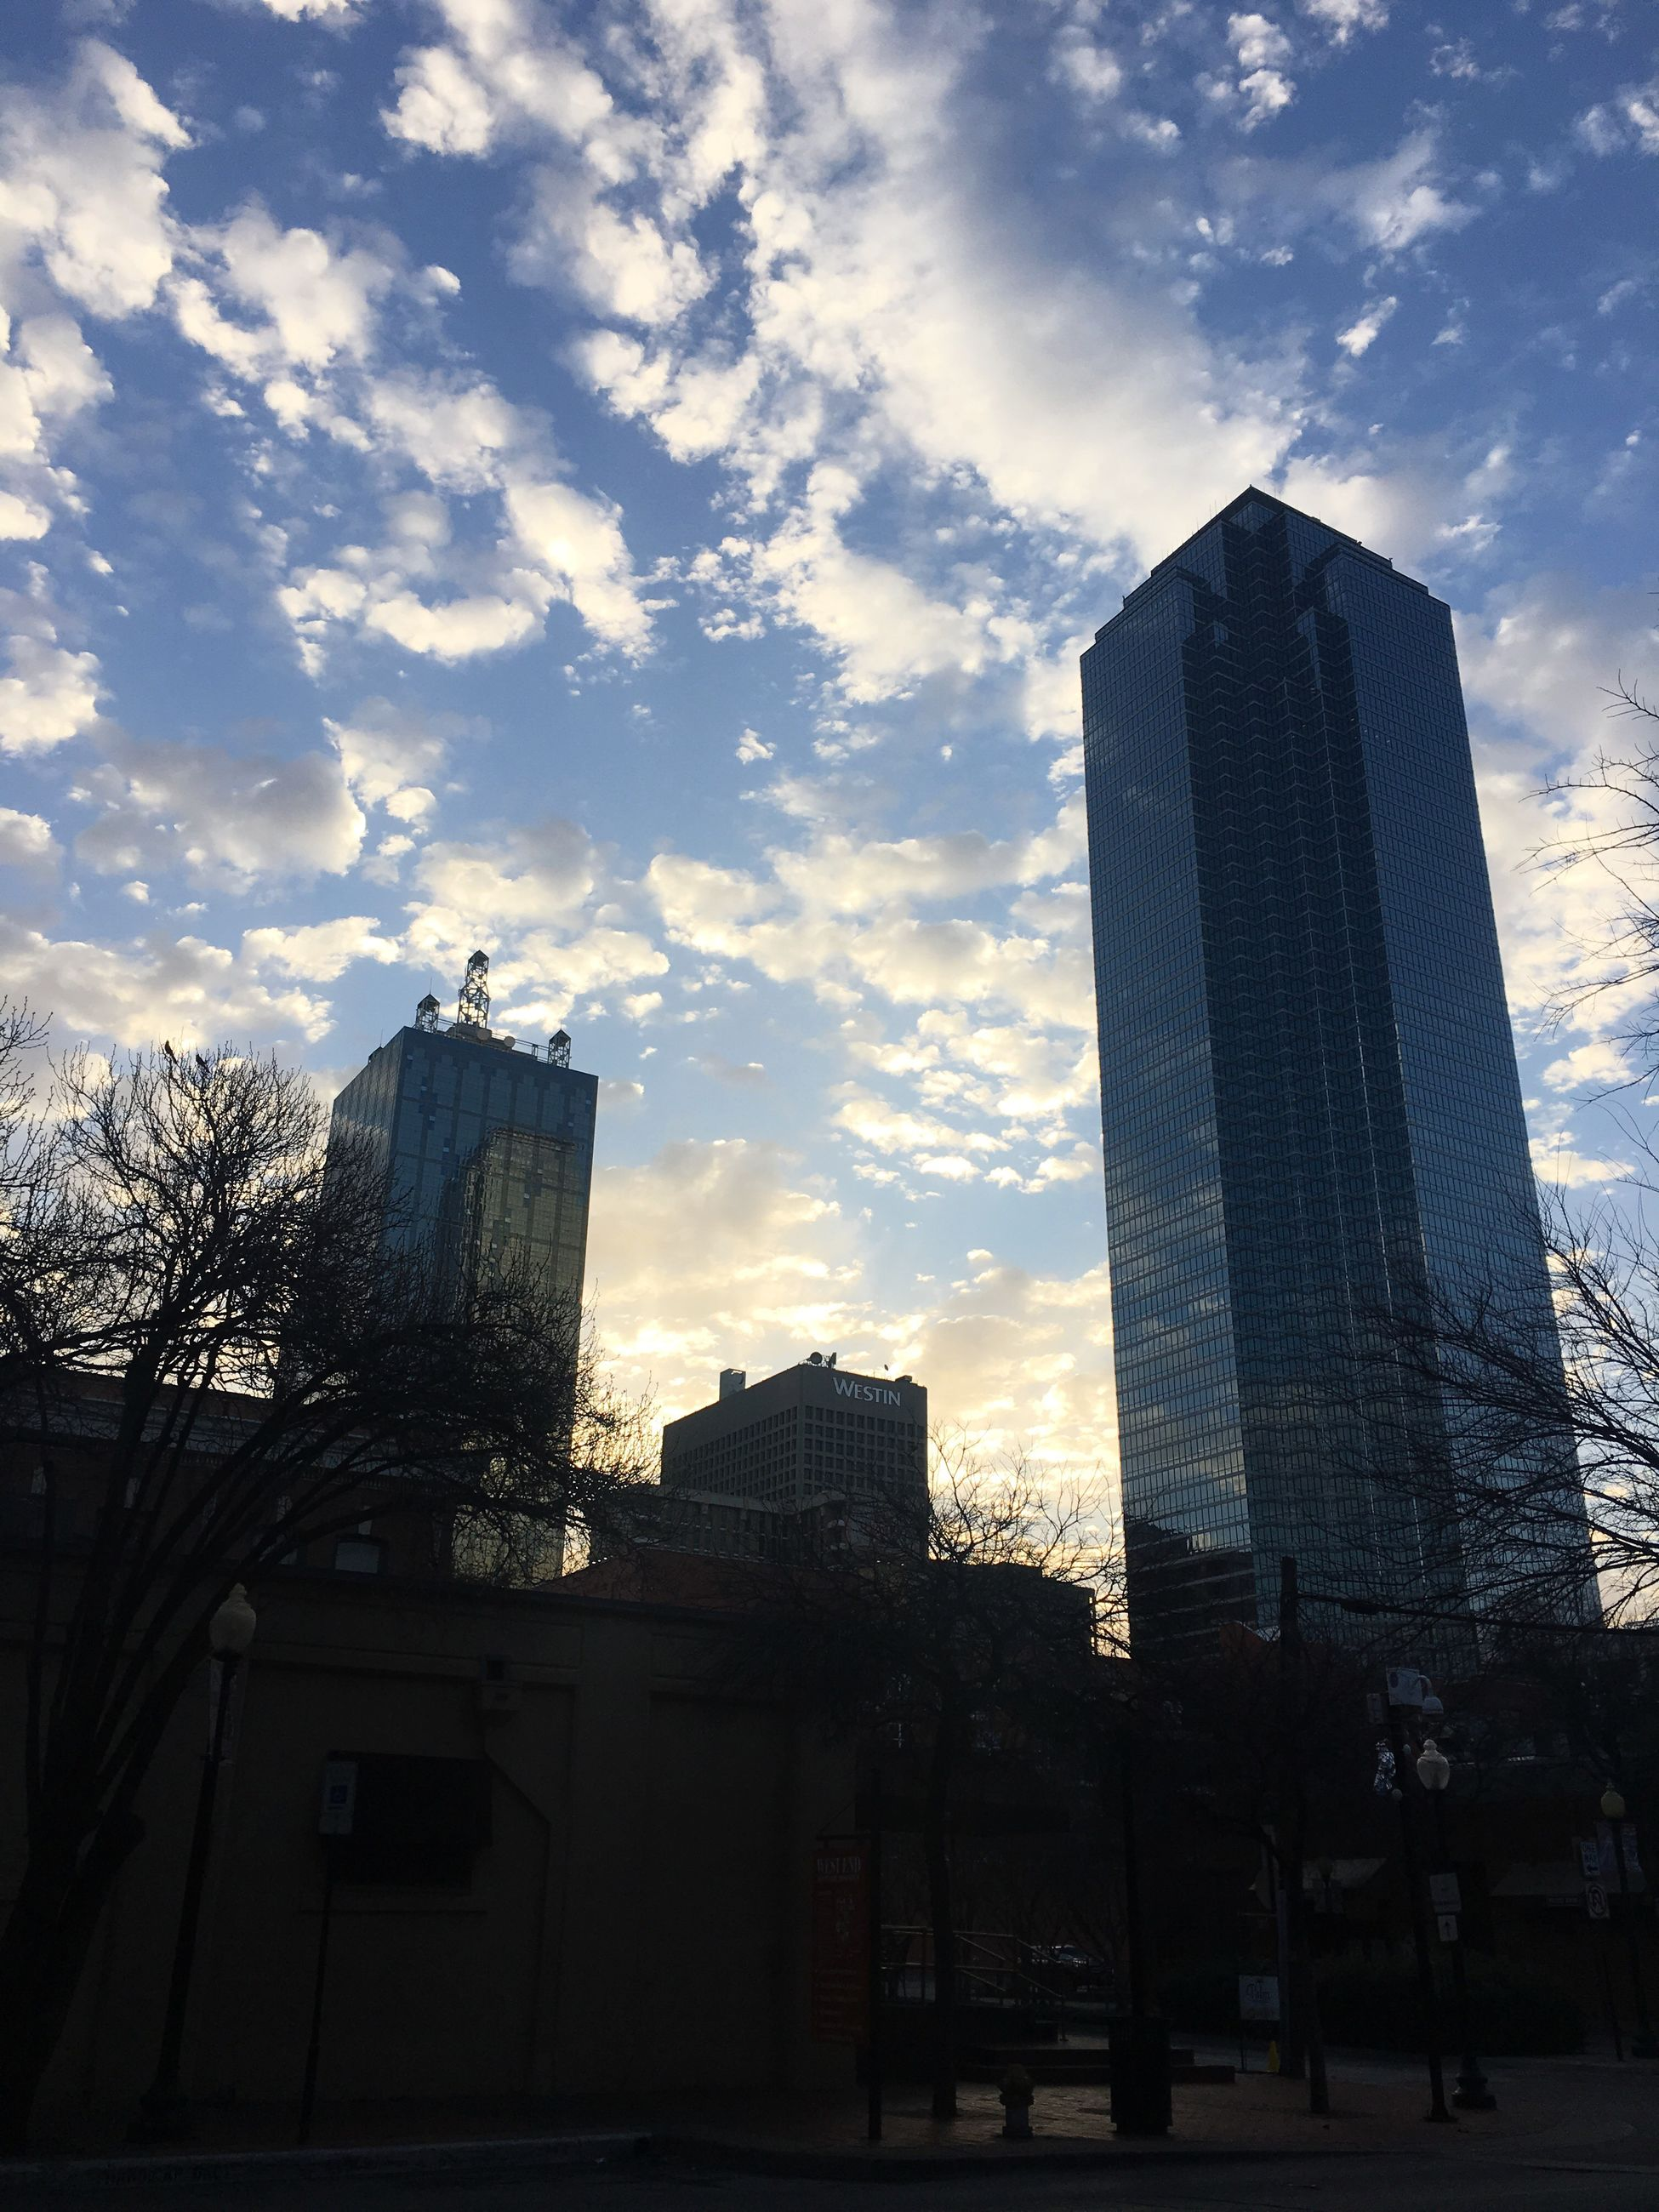 city, skyscraper, architecture, building exterior, sunset, no people, built structure, outdoors, modern, sky, low angle view, city life, cloud - sky, urban skyline, downtown district, cityscape, day